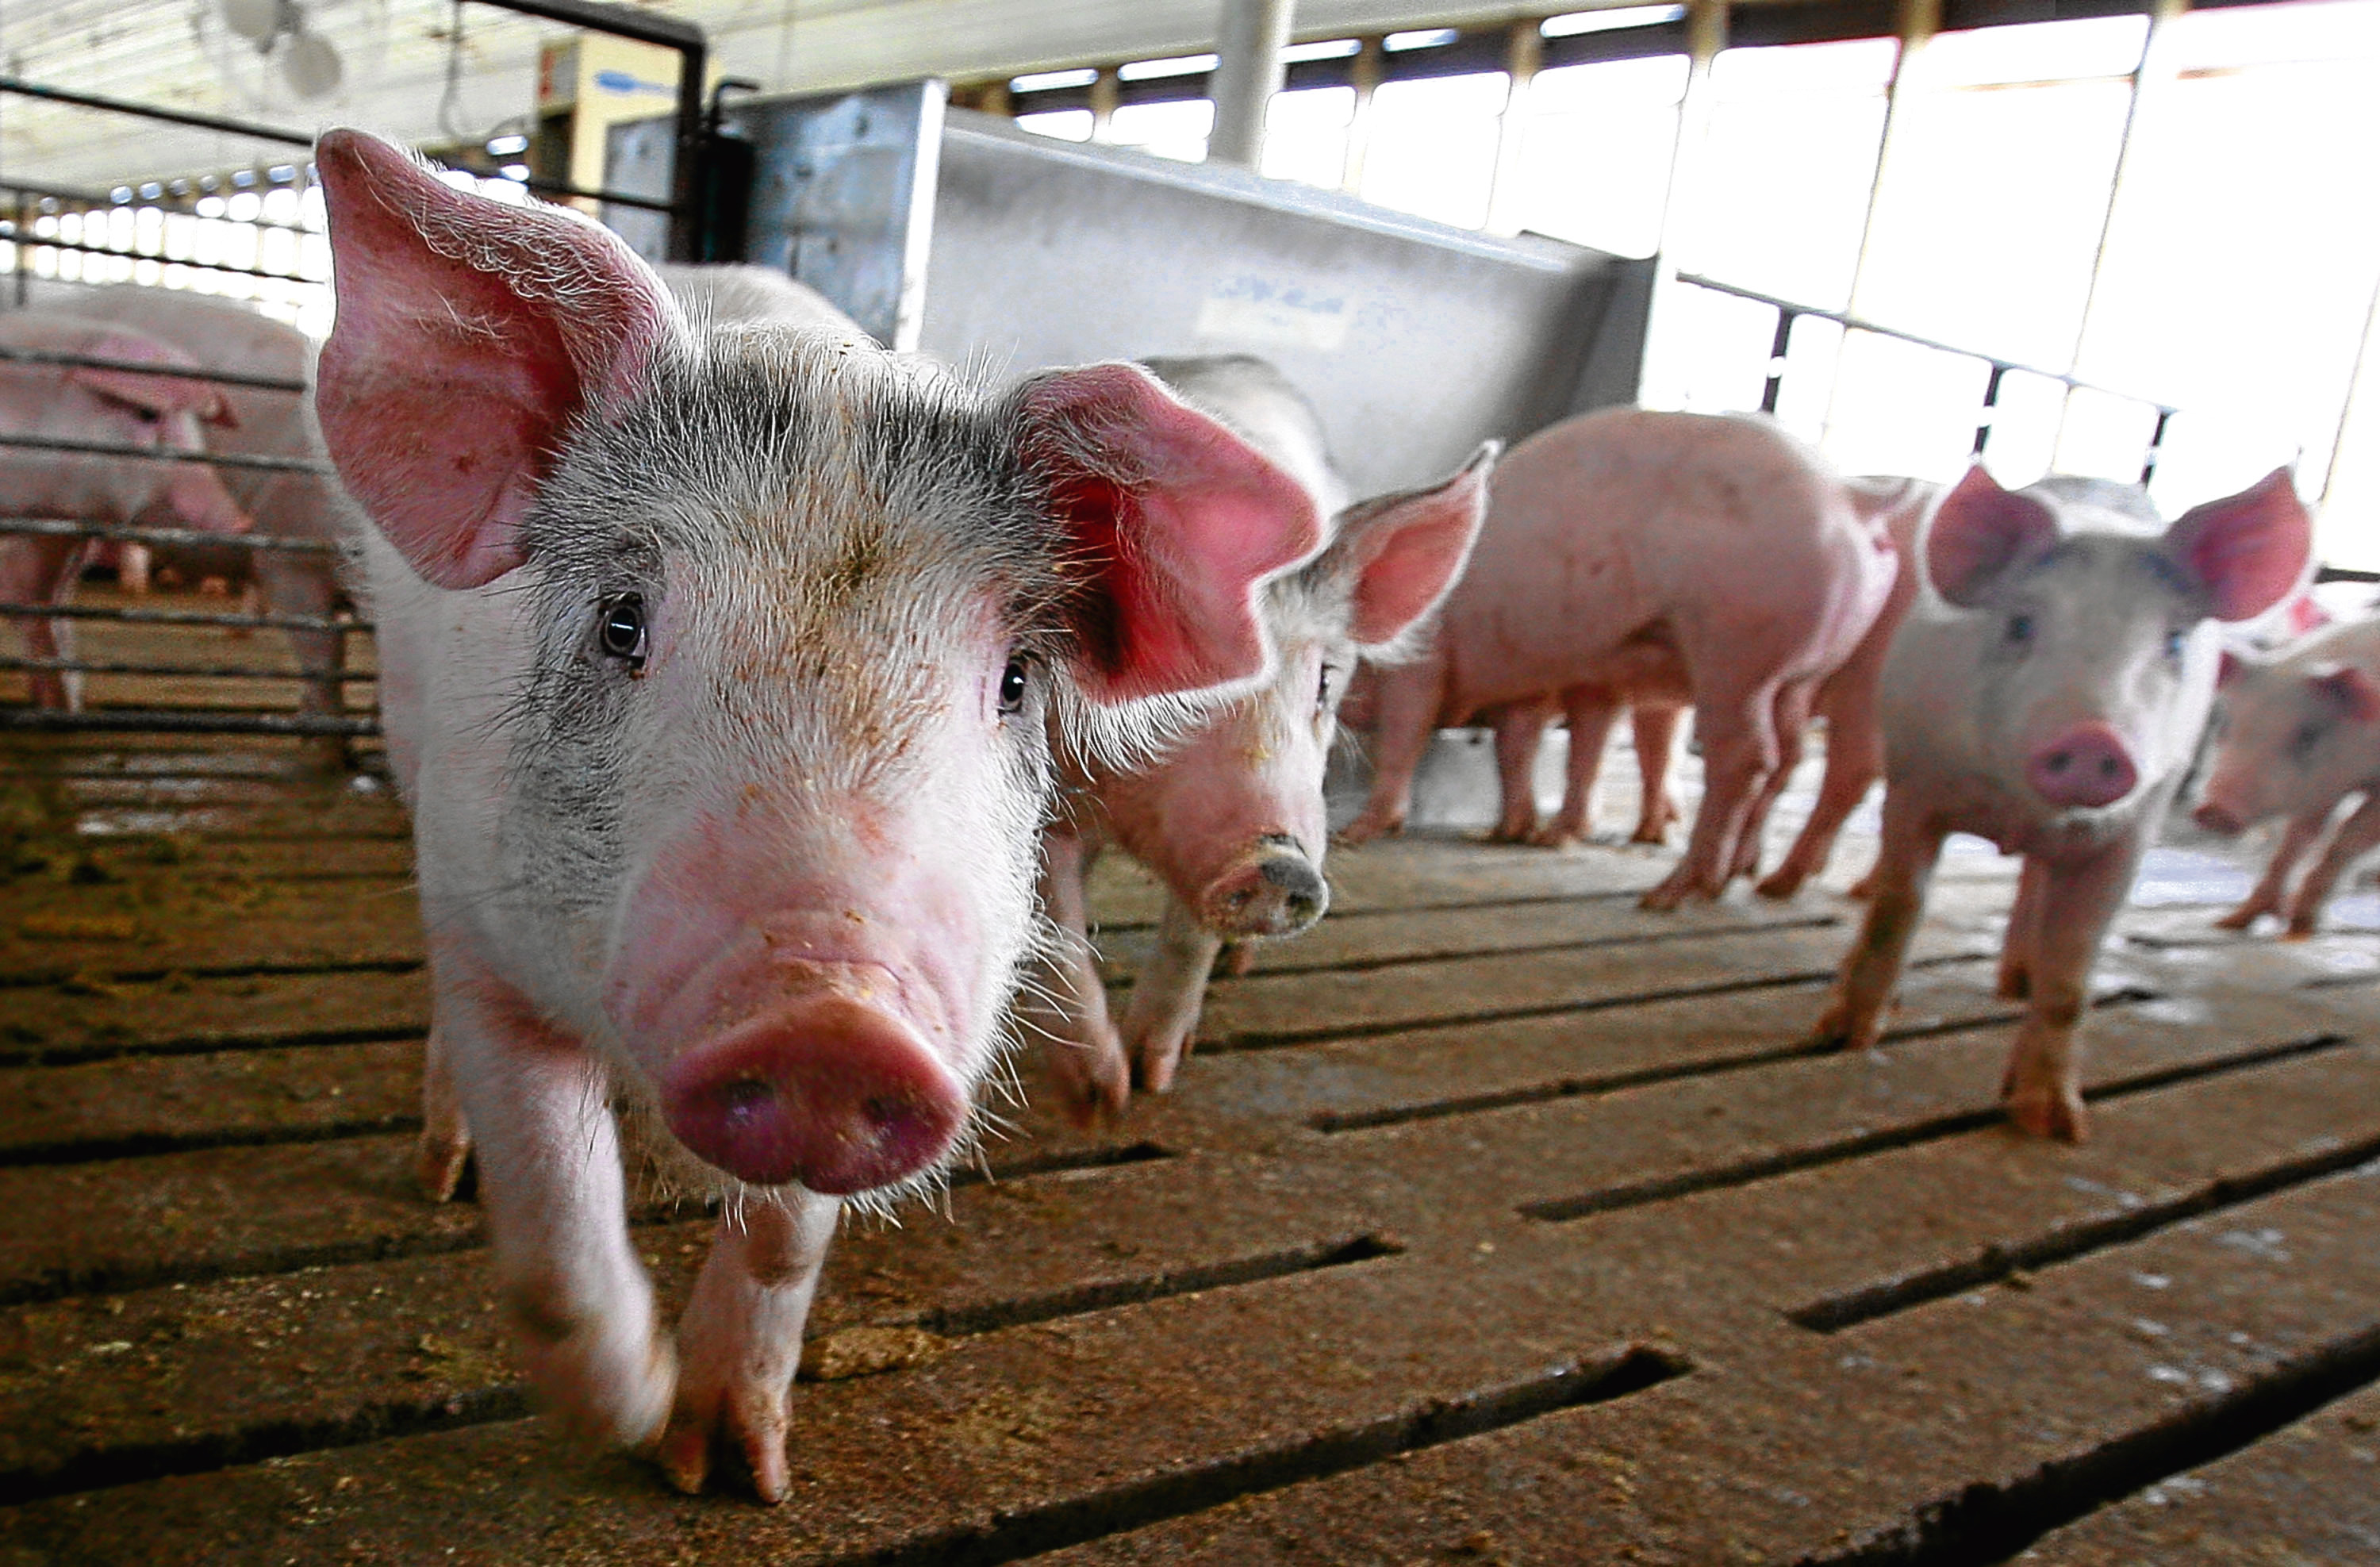 The survey was carried out by the National Pig Association